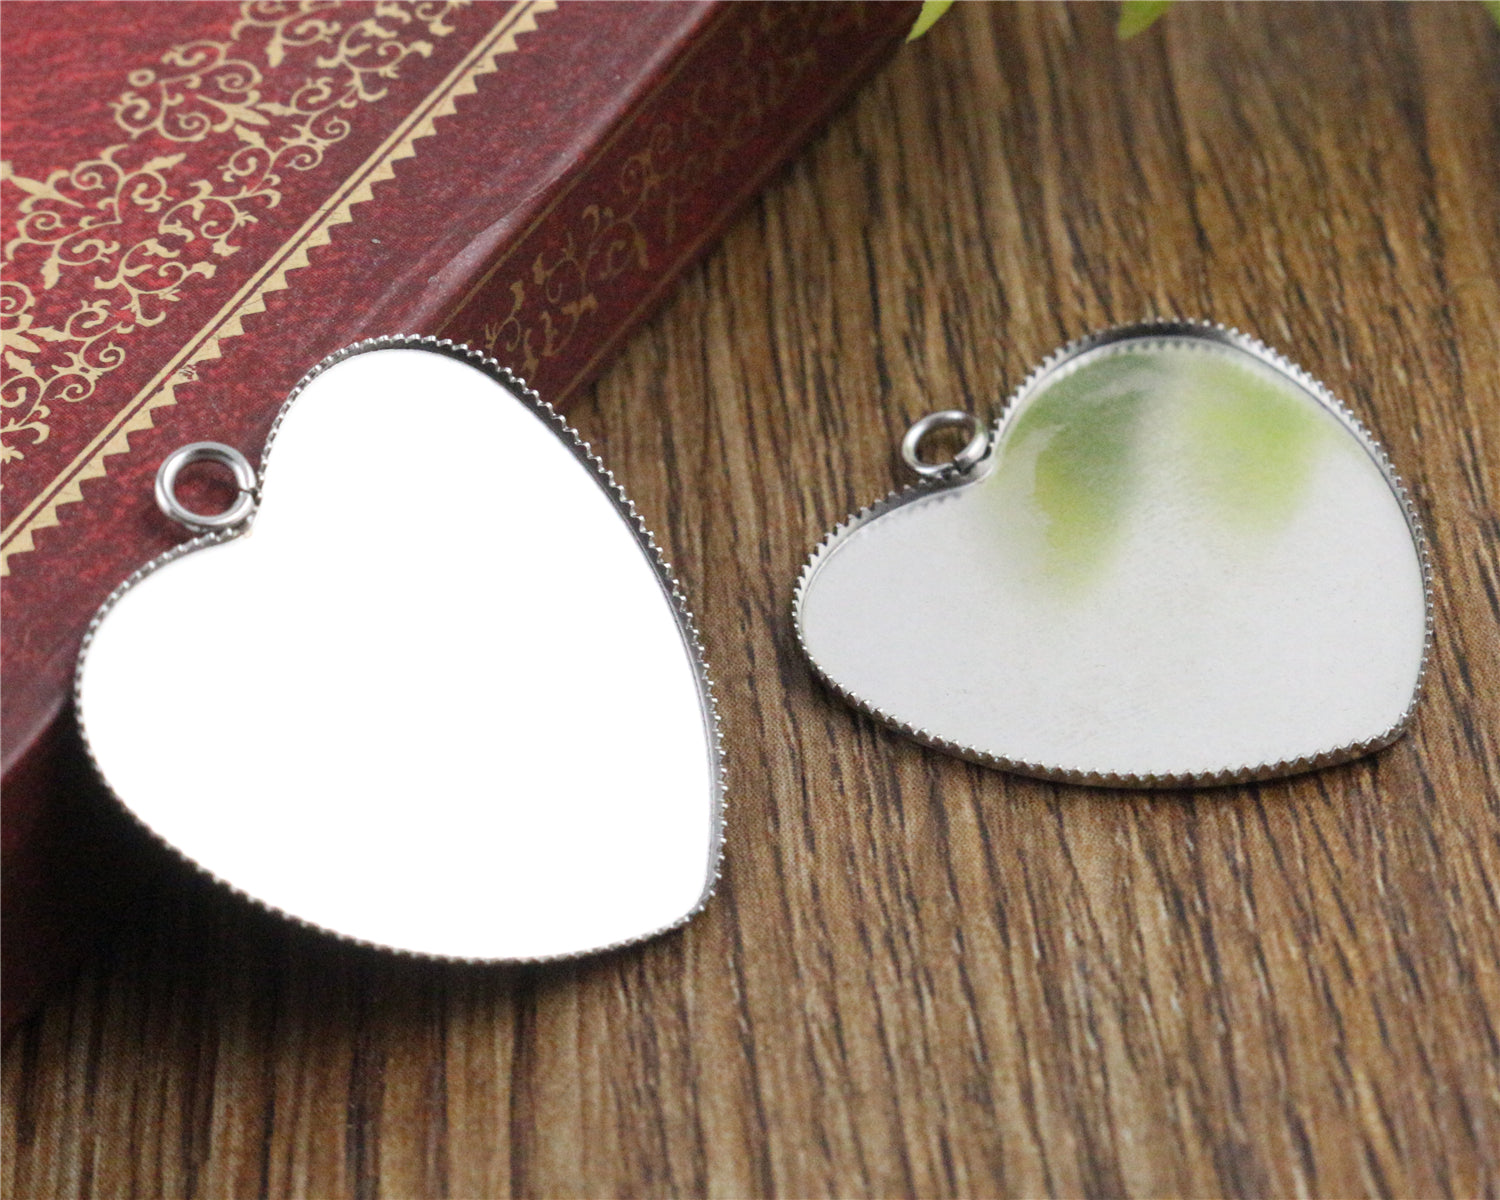 25mm Never Fade Heart Stainless Steel Sawtooth Copper Blank Tray Pendant